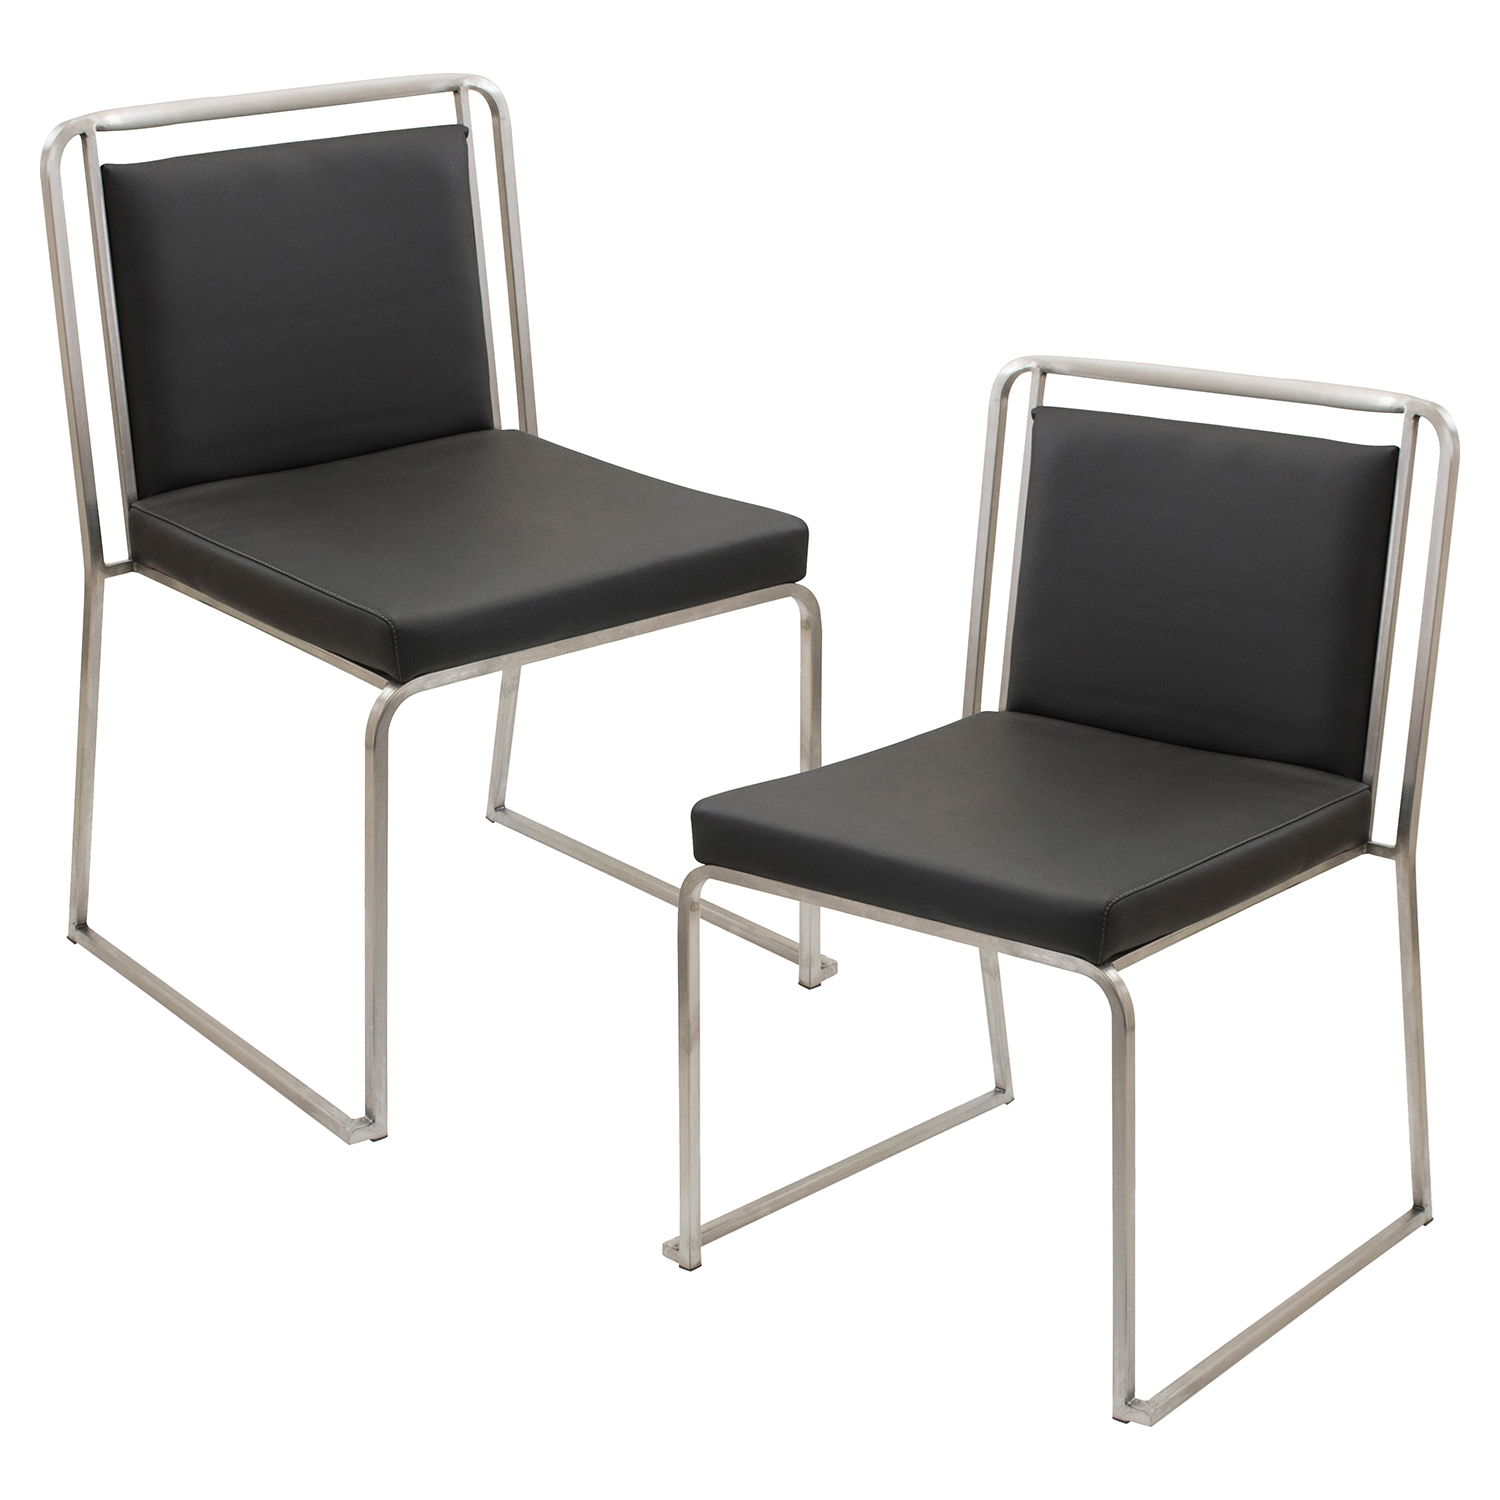 Cascade Stackable Dining Chair - Black (Set of 2)